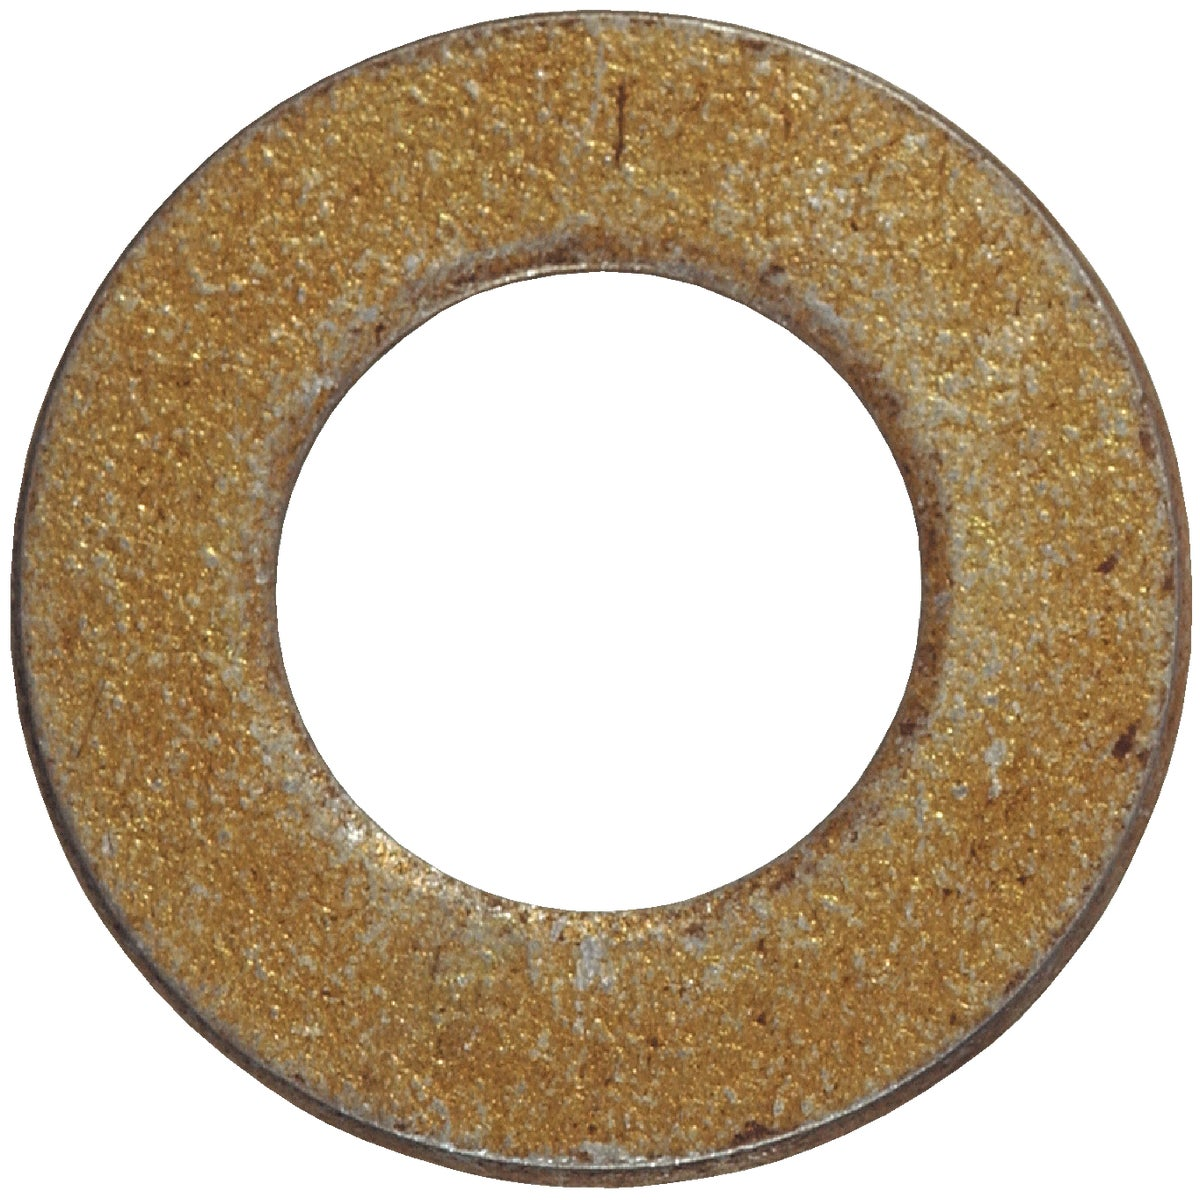 "3/8"" SAE FLAT WASHER - 280324 by Hillman Fastener"